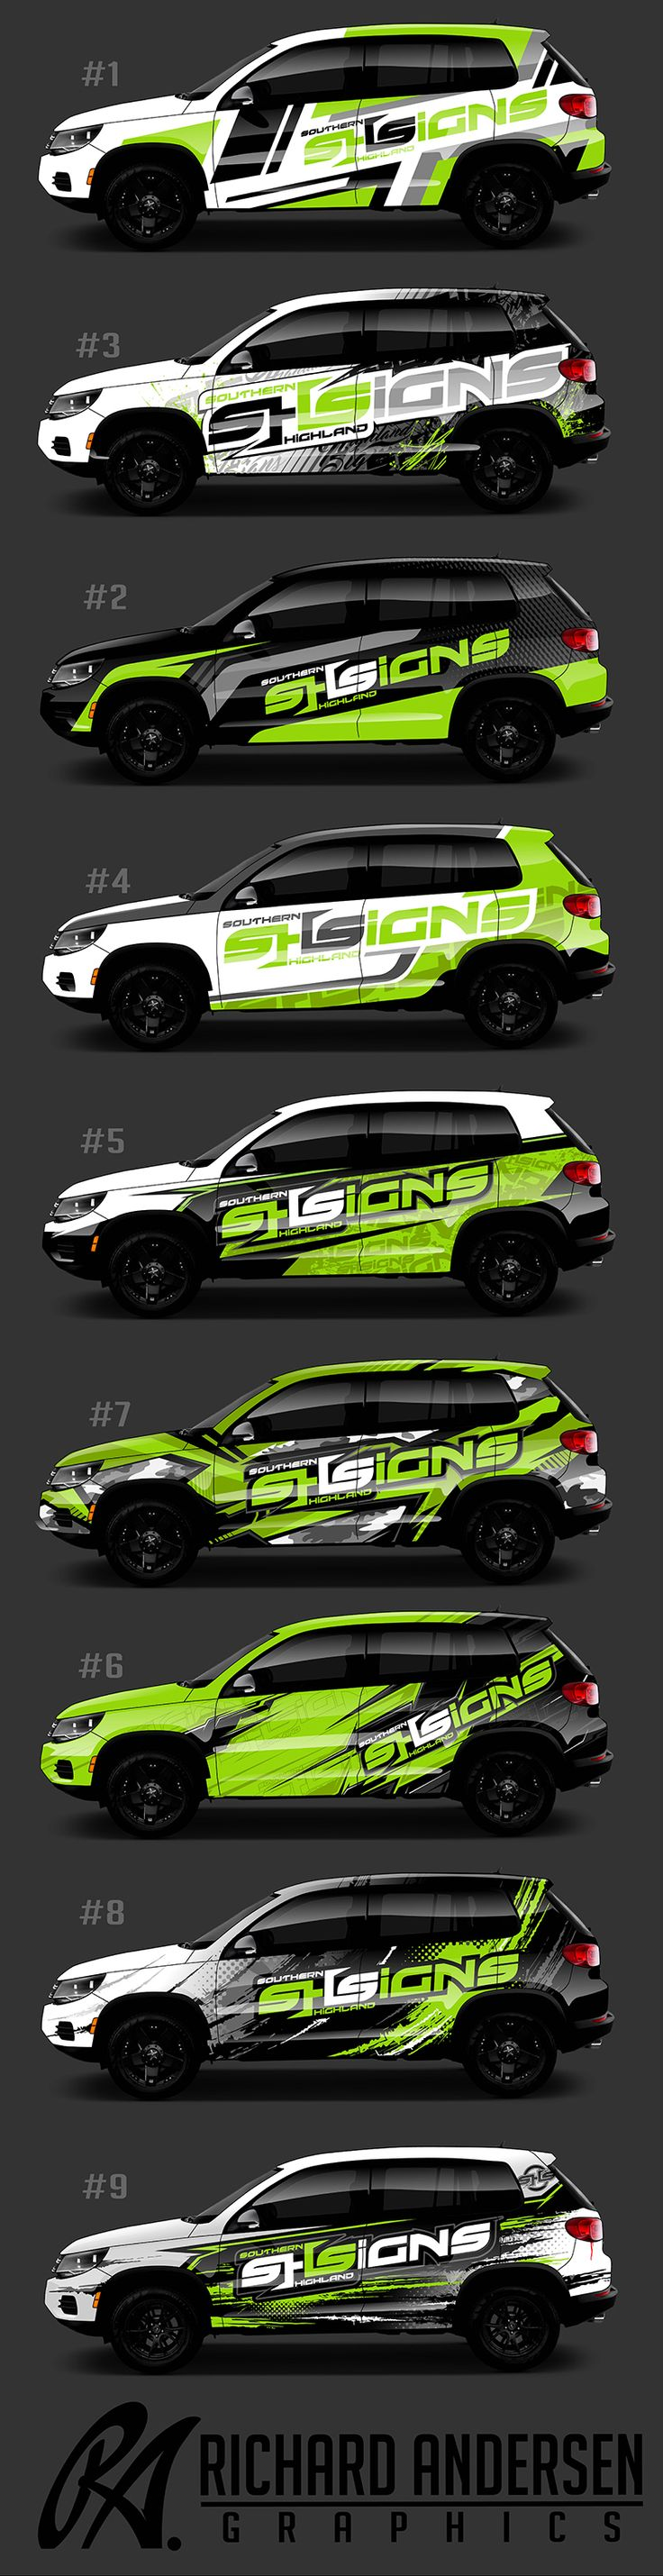 Richard Andersen Wrap designs http://ragraphics.carbonmade.com/                                                                                                                                                     More